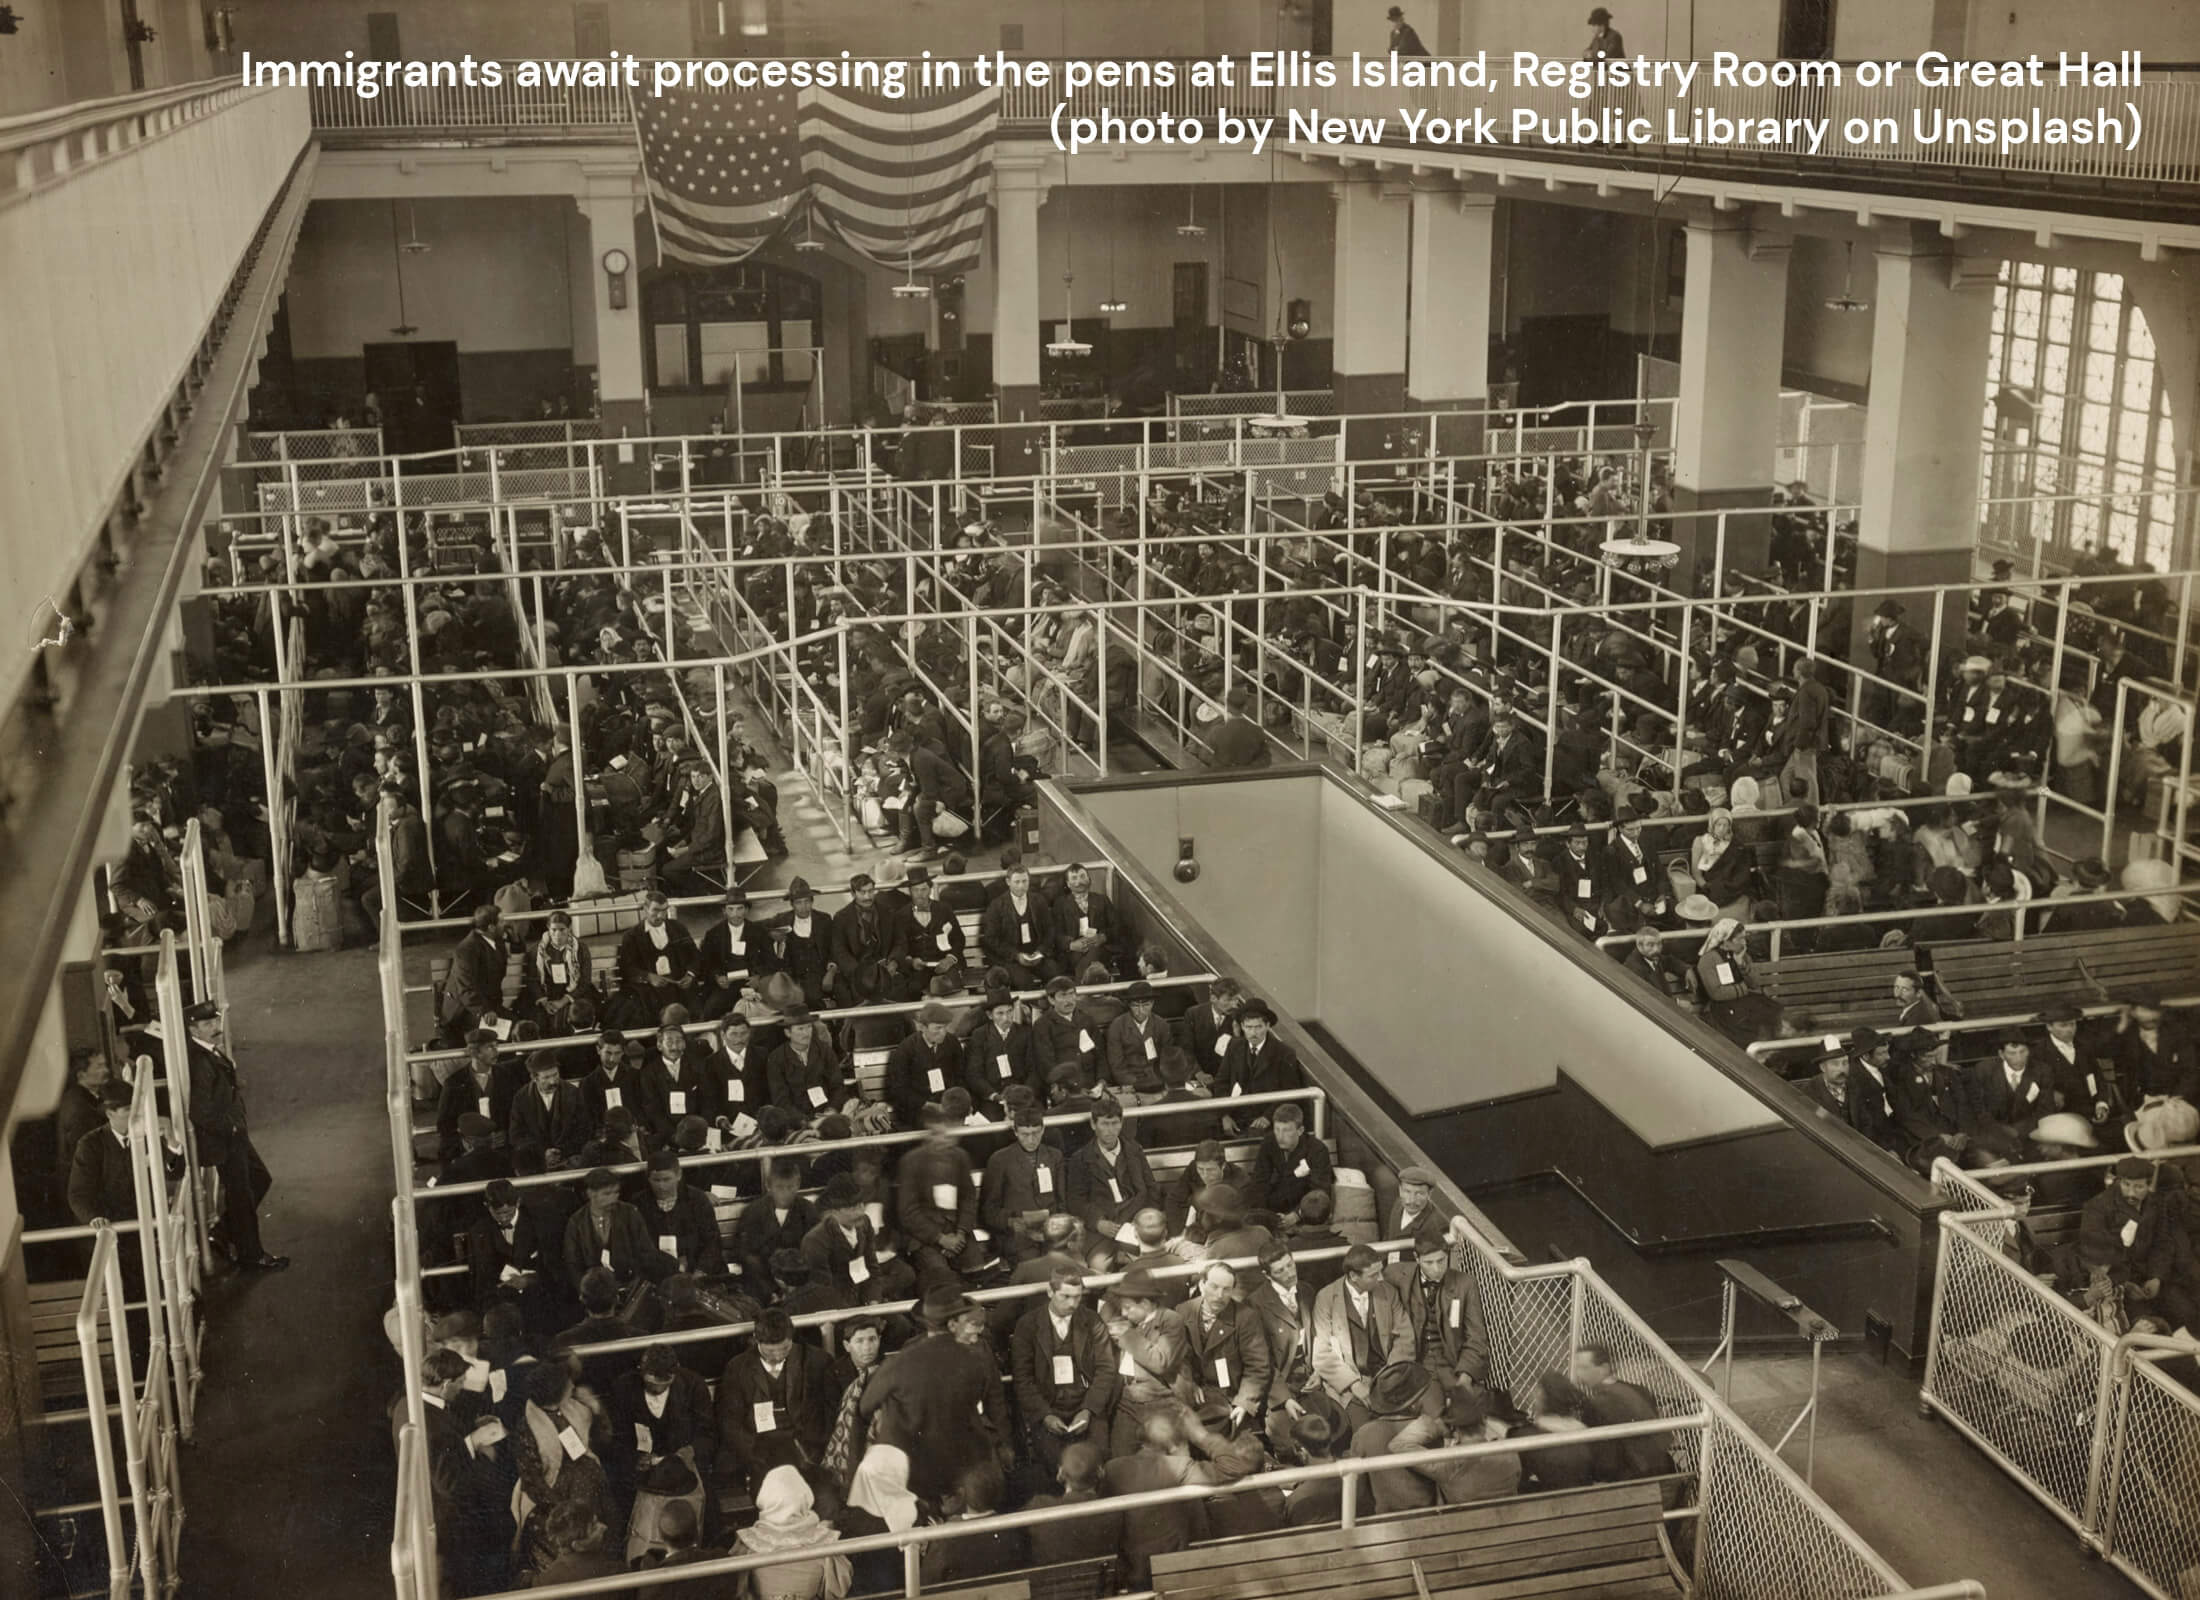 Immigrants awaiting processing in the pens at Ellis Island Registry Room or Great Hall.